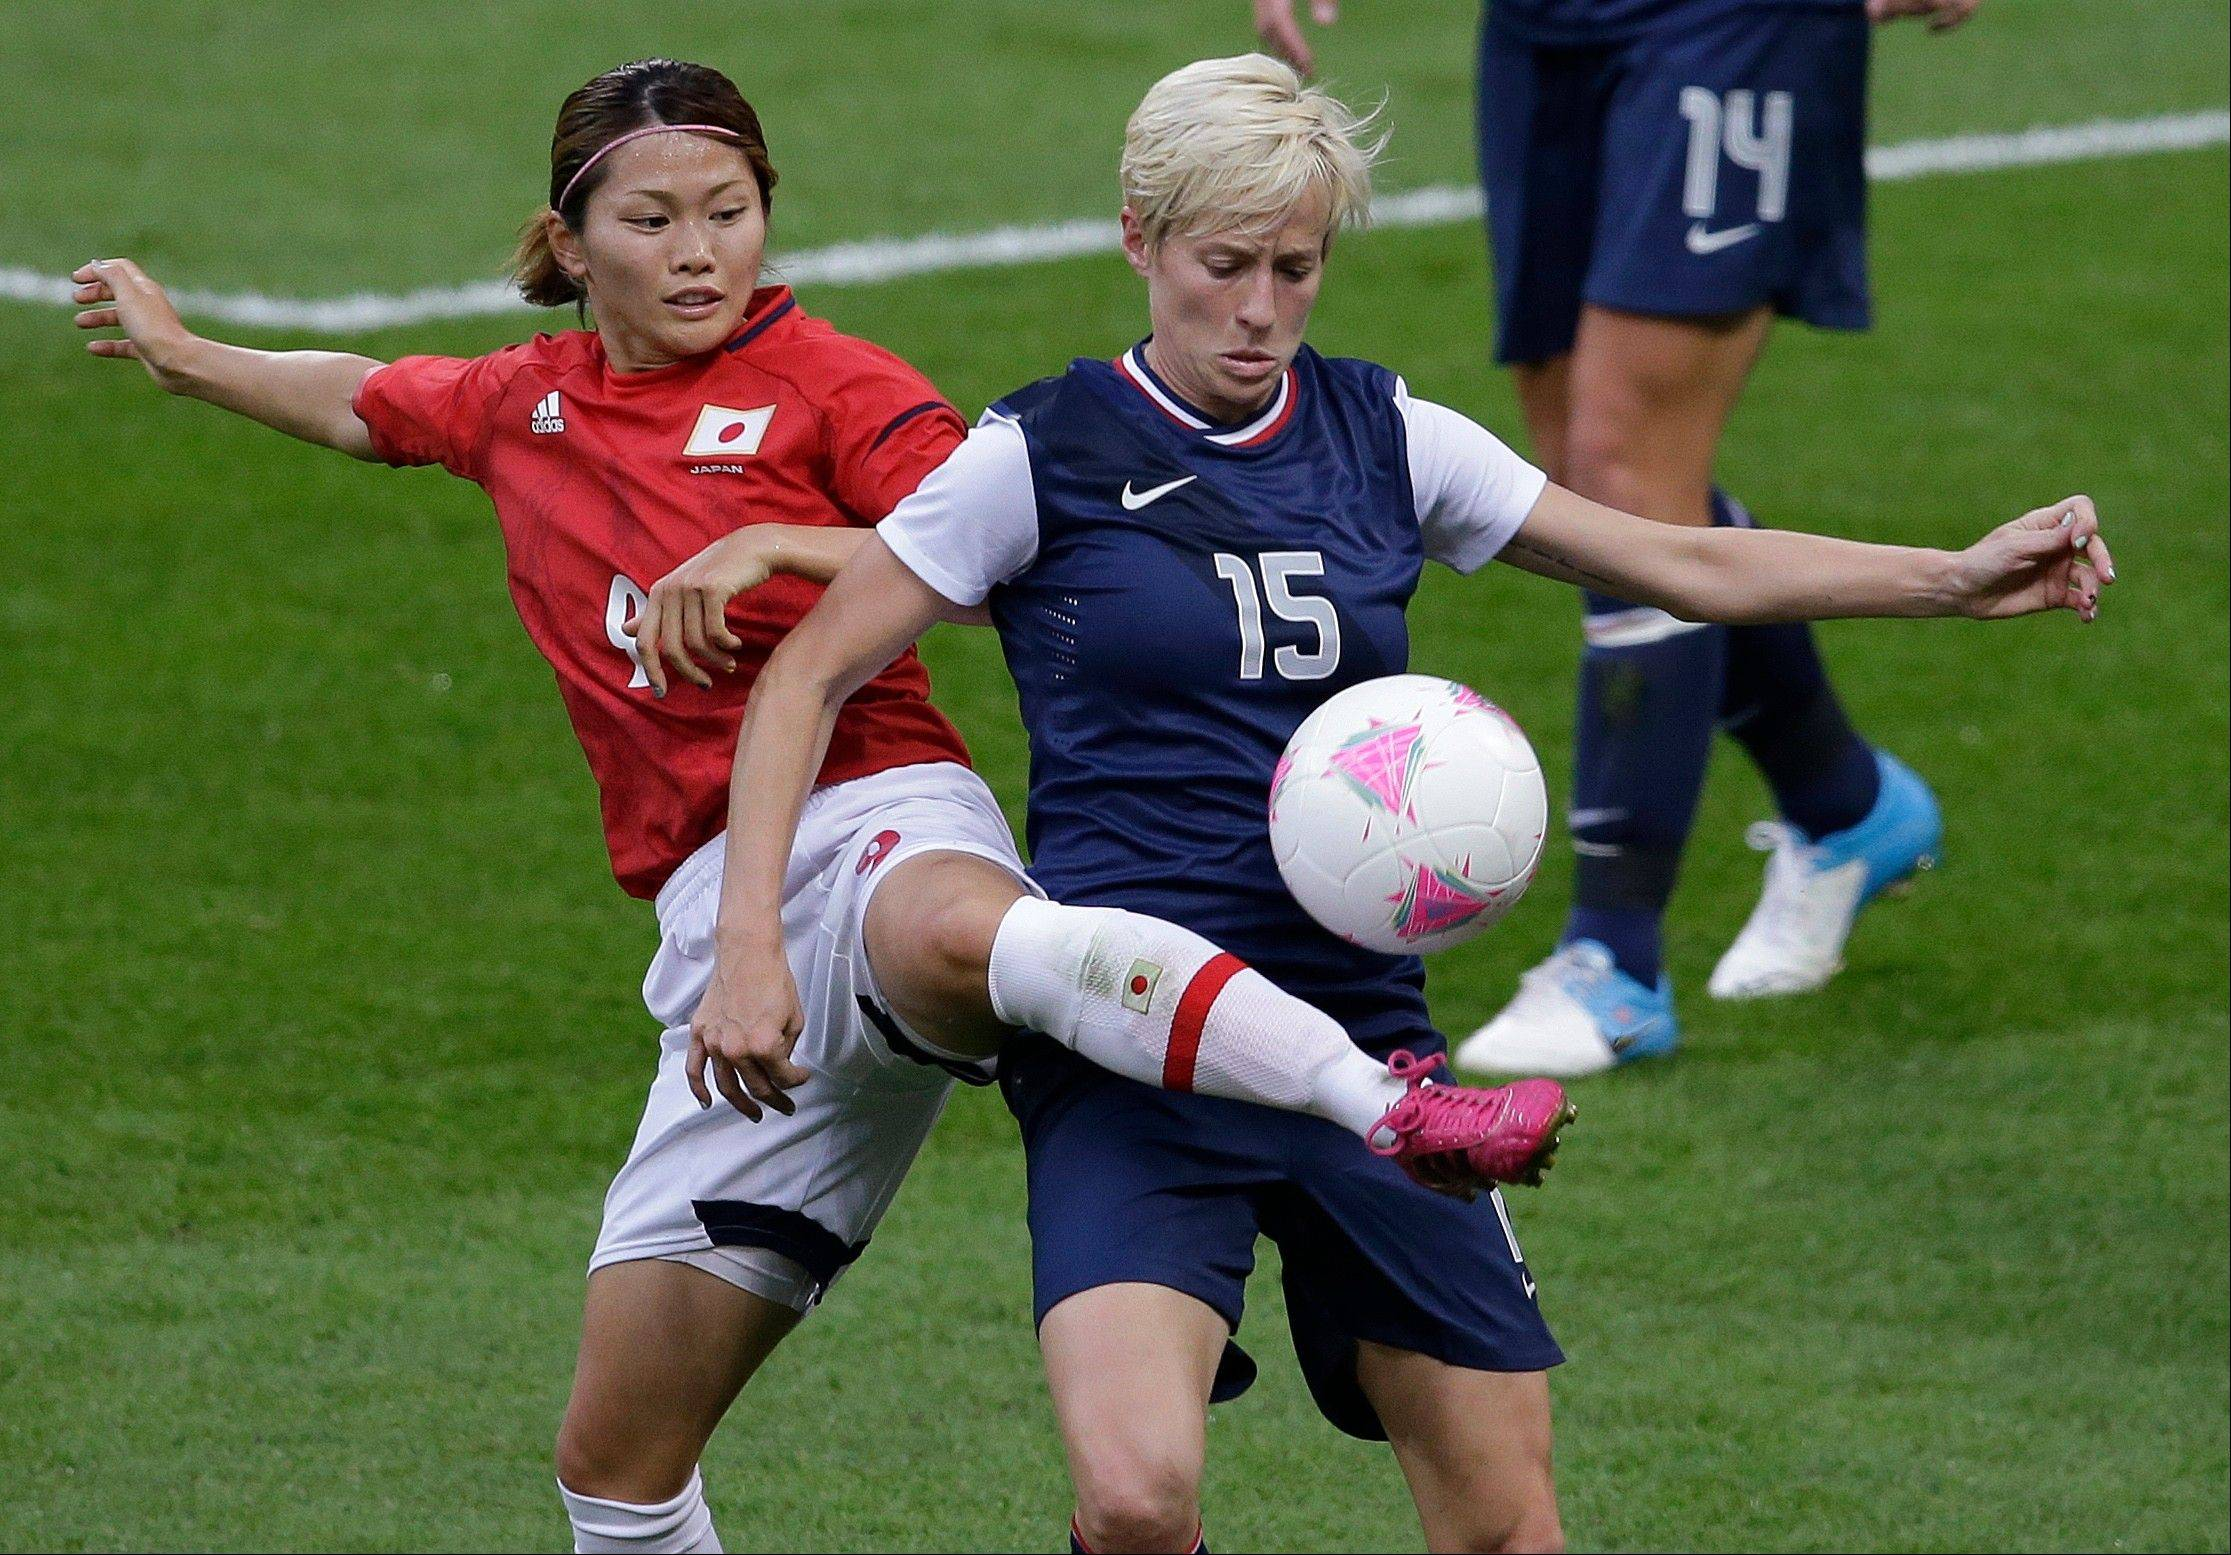 Megan Rapinoe, right, fights for possession of the ball during the women�s soccer gold medal match at the London Olympics Thursday. Rapinoe, one of the stars of the U.S. team, is one of few Olympic athletes to have publicly stated they are gay.